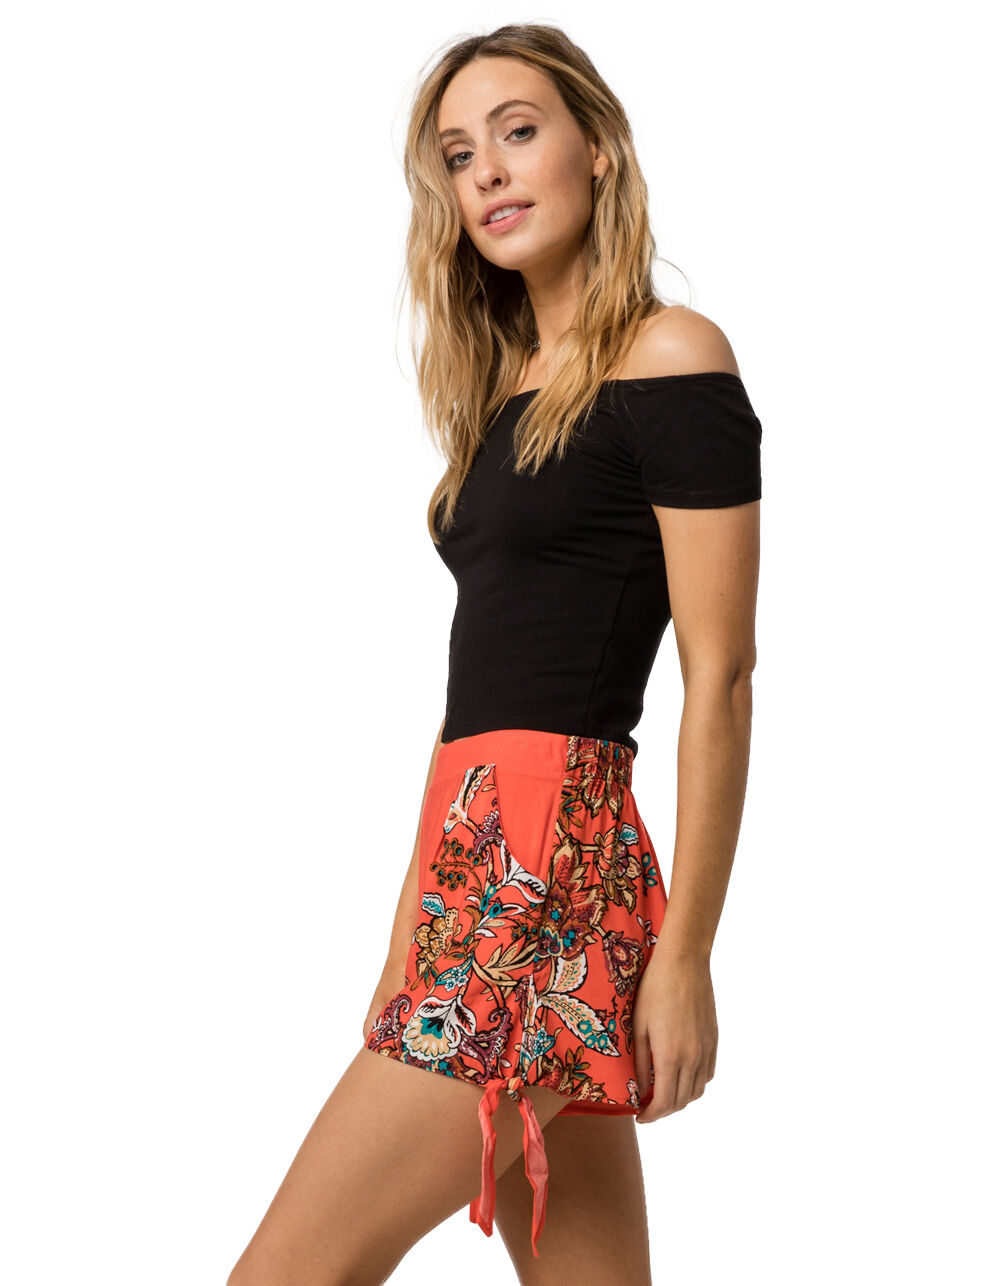 SKY AND SPARROW TIE SIDE SHORTS